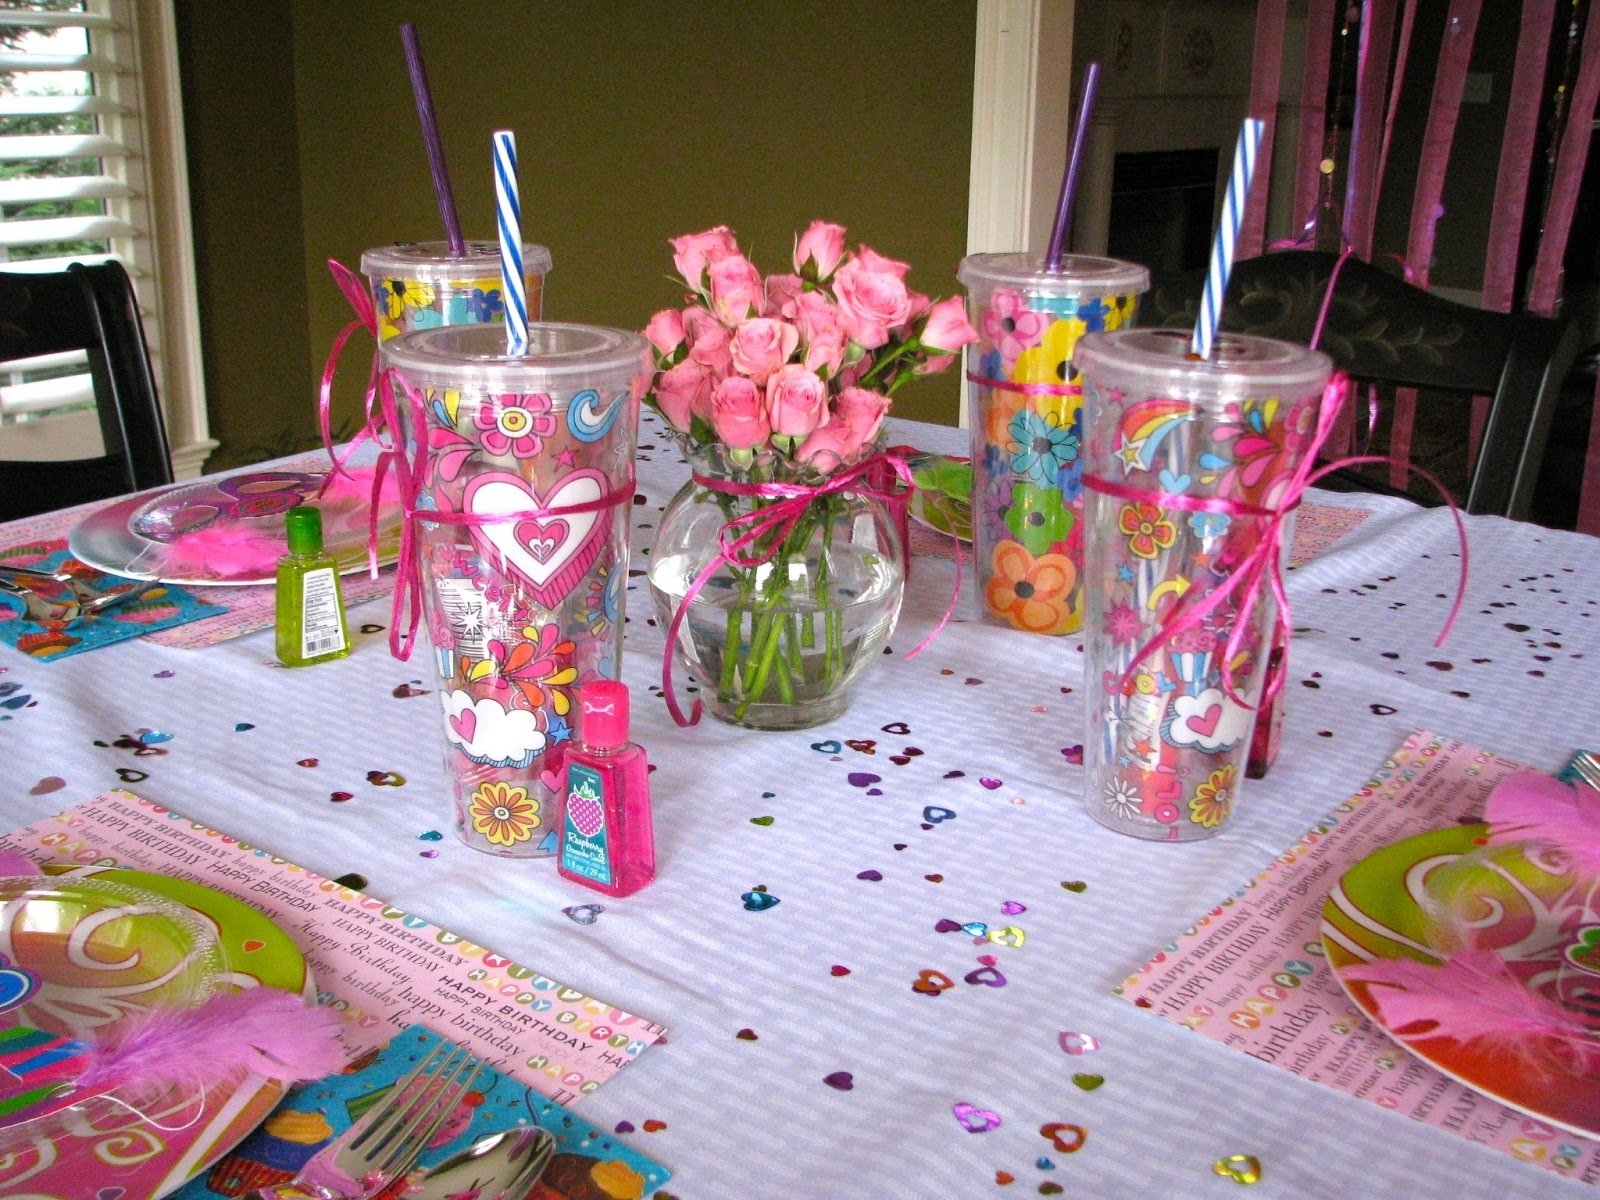 10 Stylish Birthday Party Ideas For 8 Year Old Girls best girl birthday party theme birthday party ideas best birthday 2